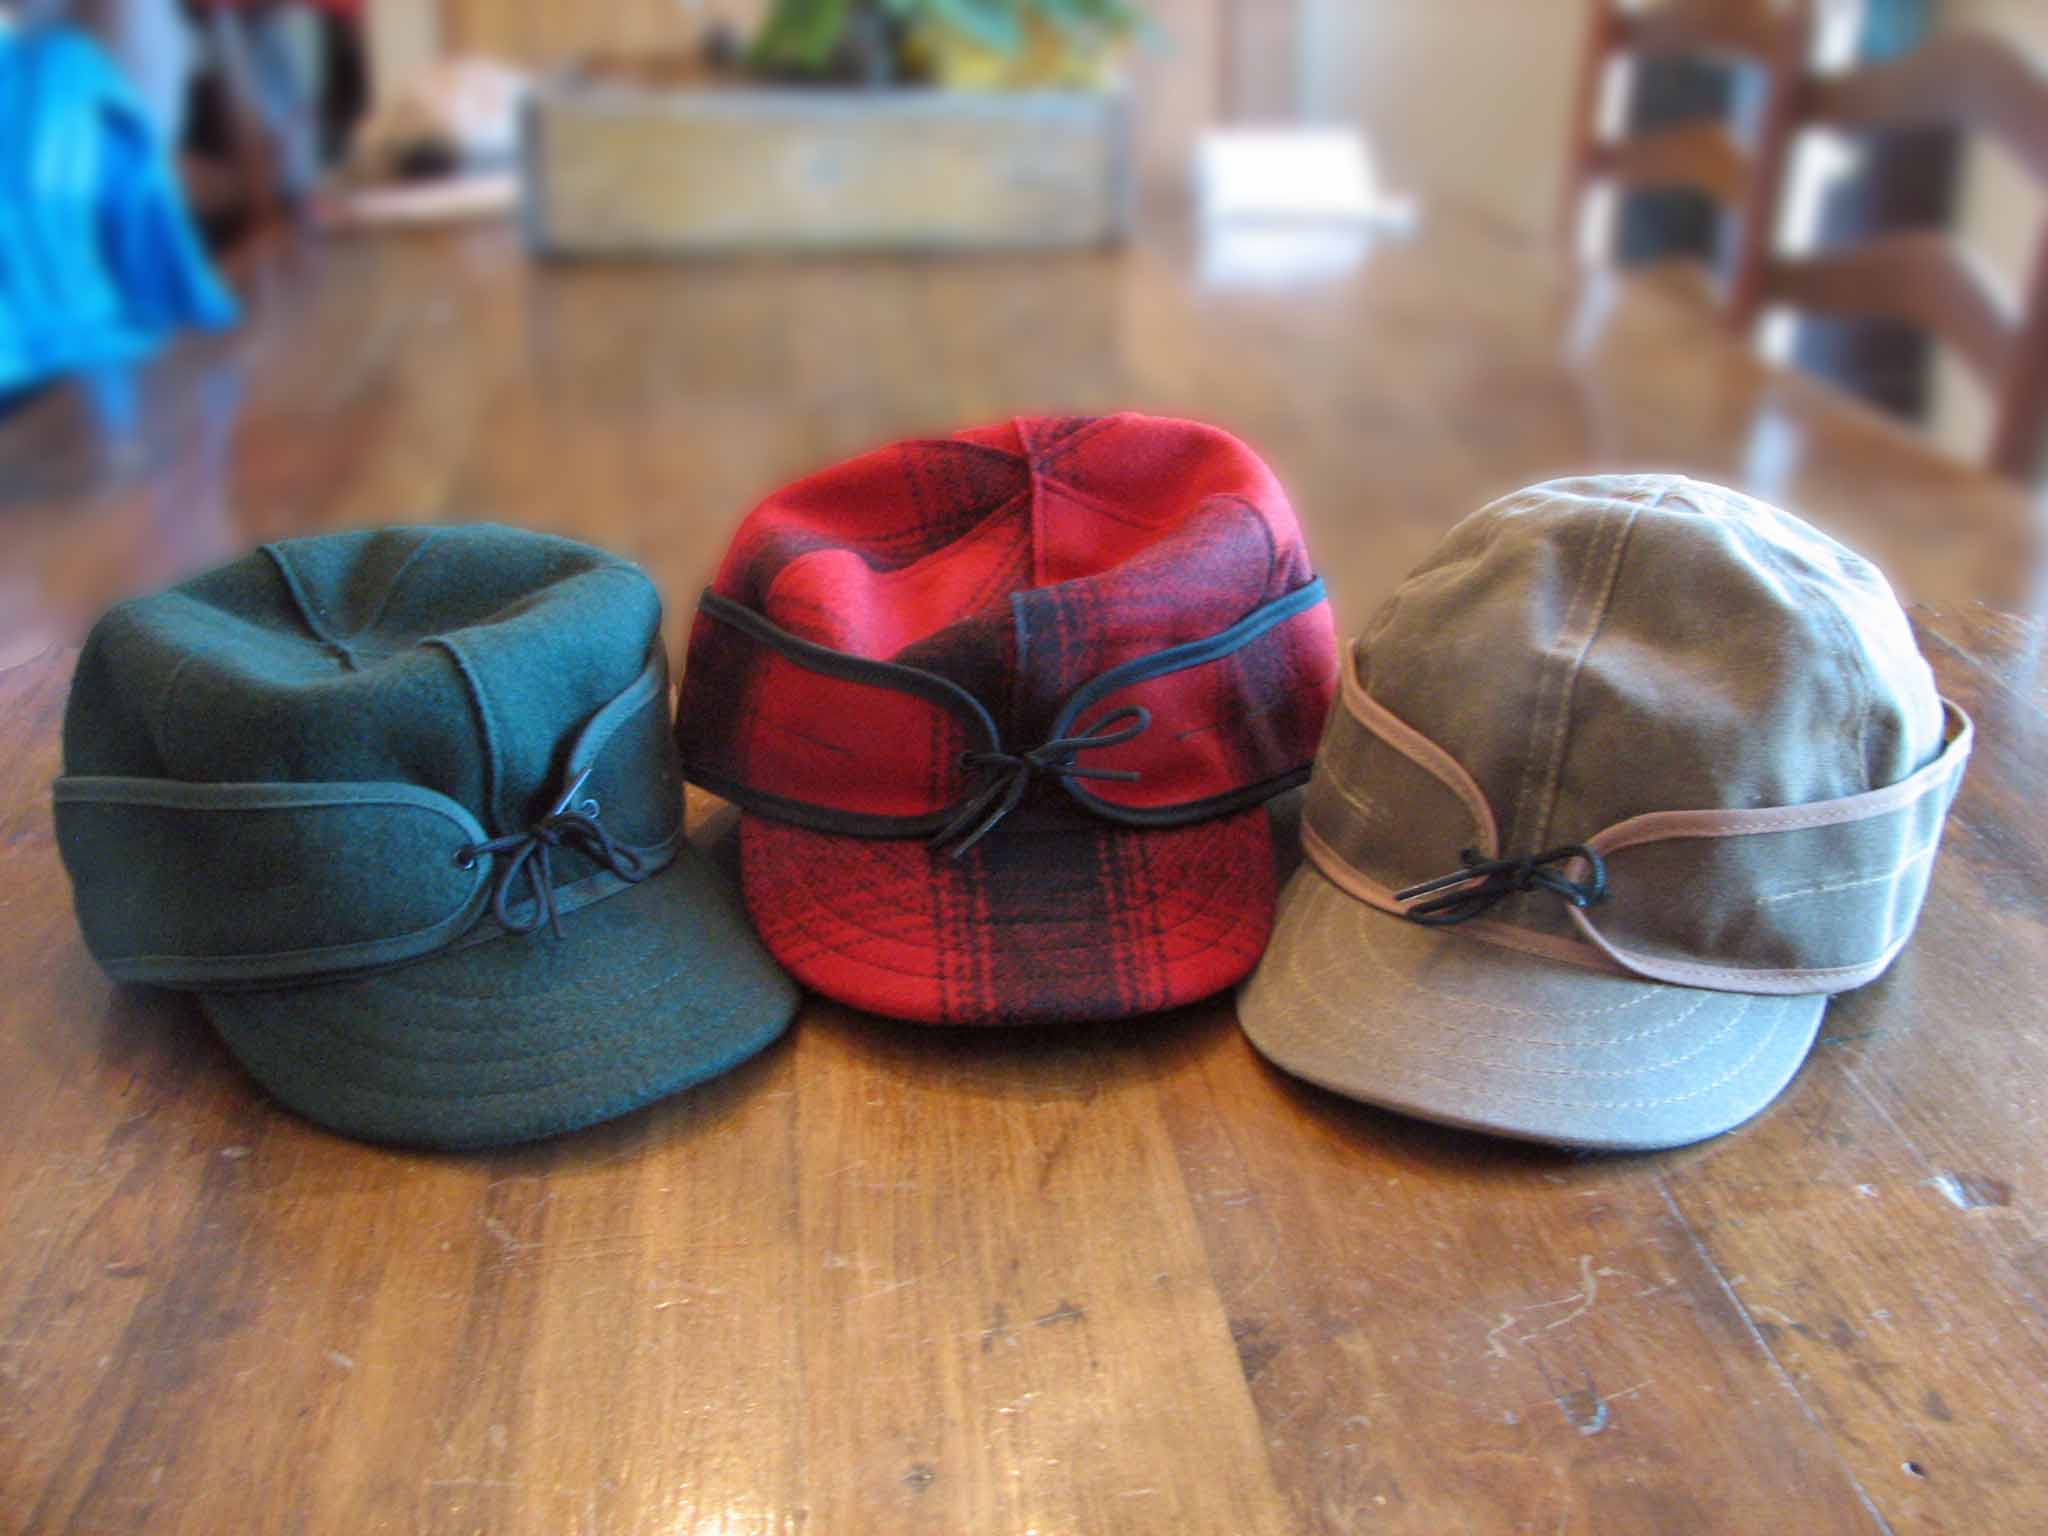 Adding to the Kromer Collection